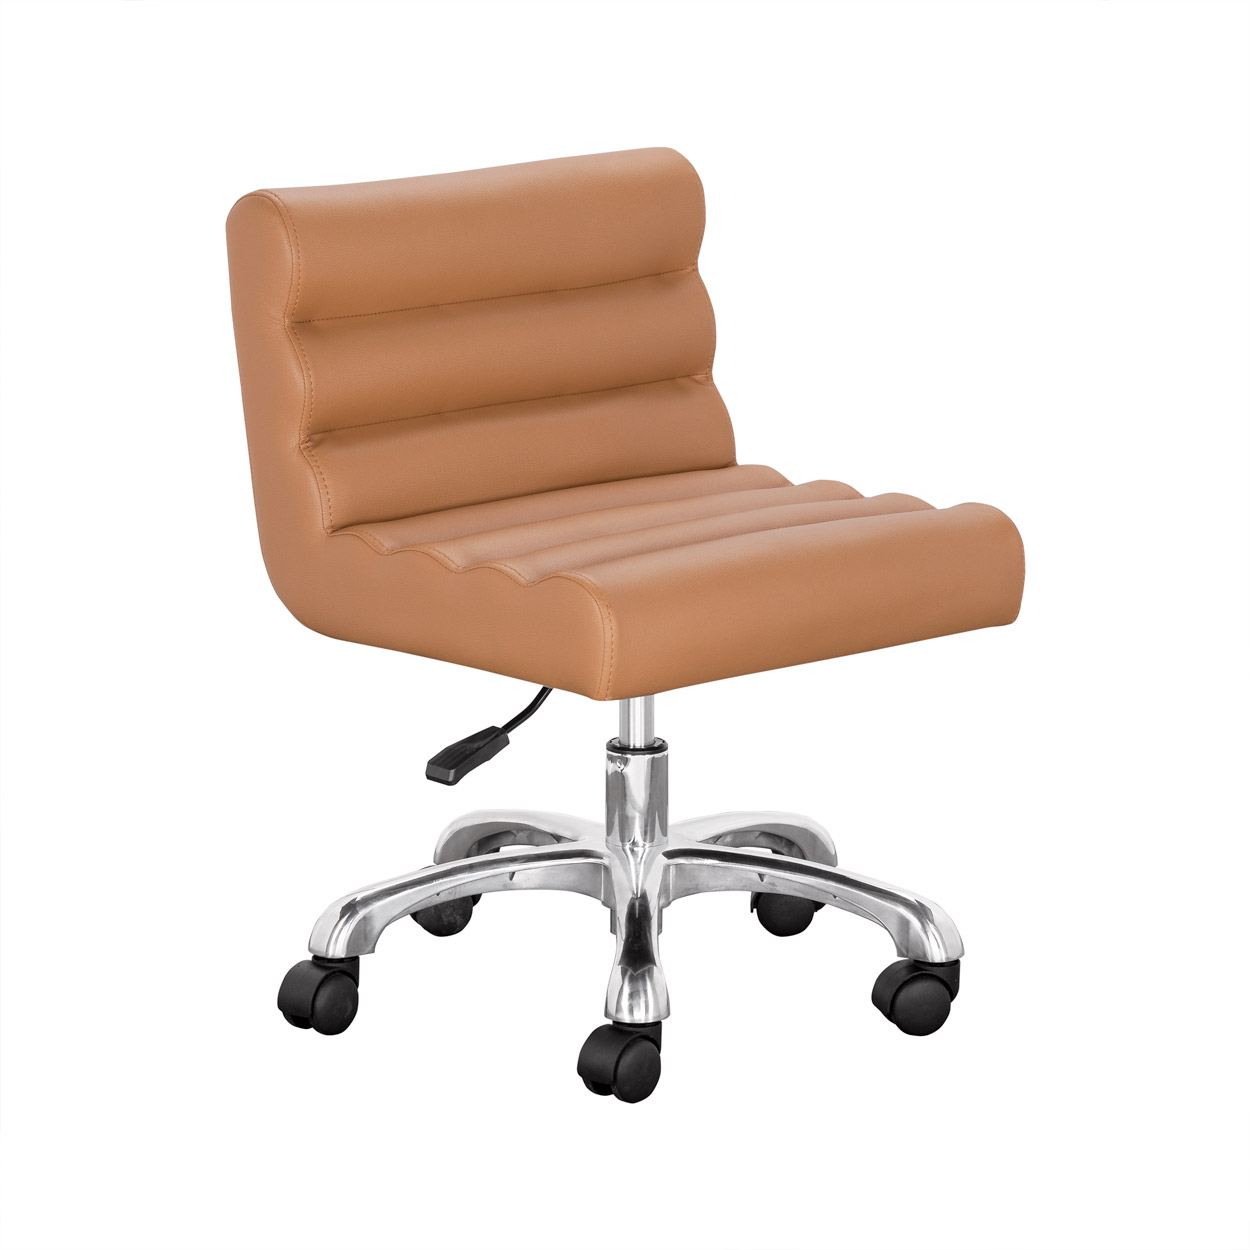 Plush Pedicure Stool alternative product image 3